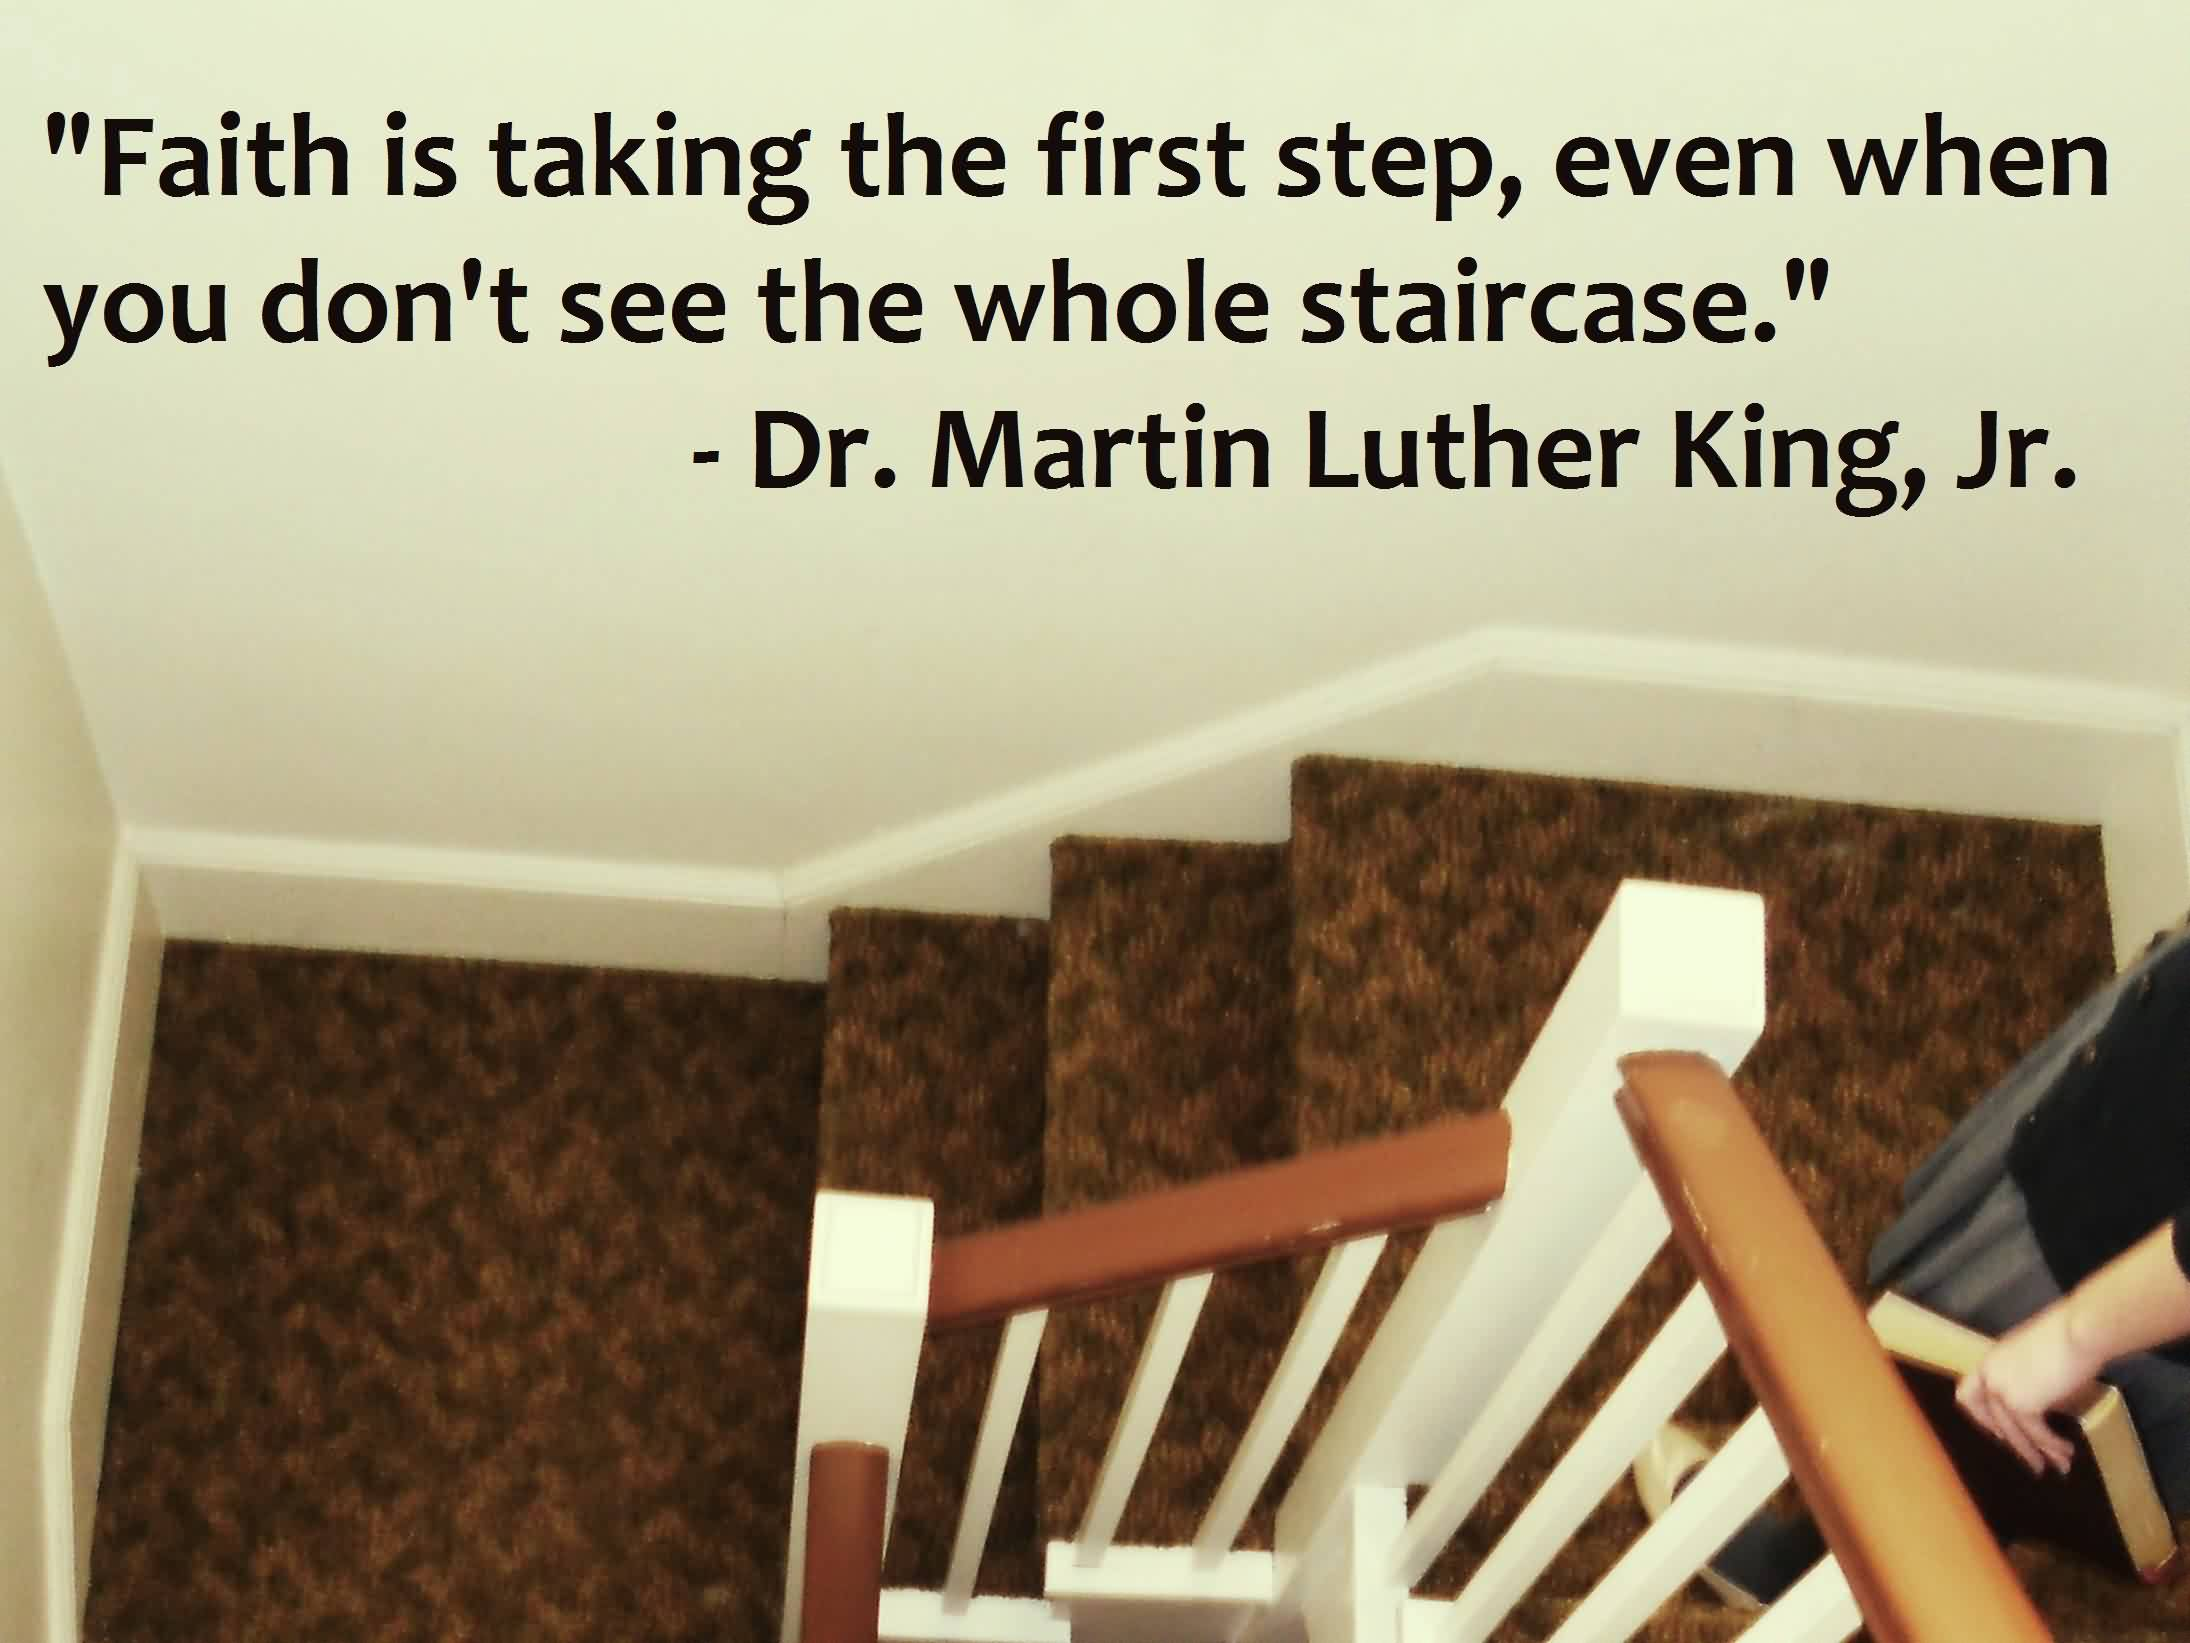 Good  Church Quote By Dr. Martin Luther king,jr~ Faith is taking the first step , even ehen you don,t see the whole staircase.